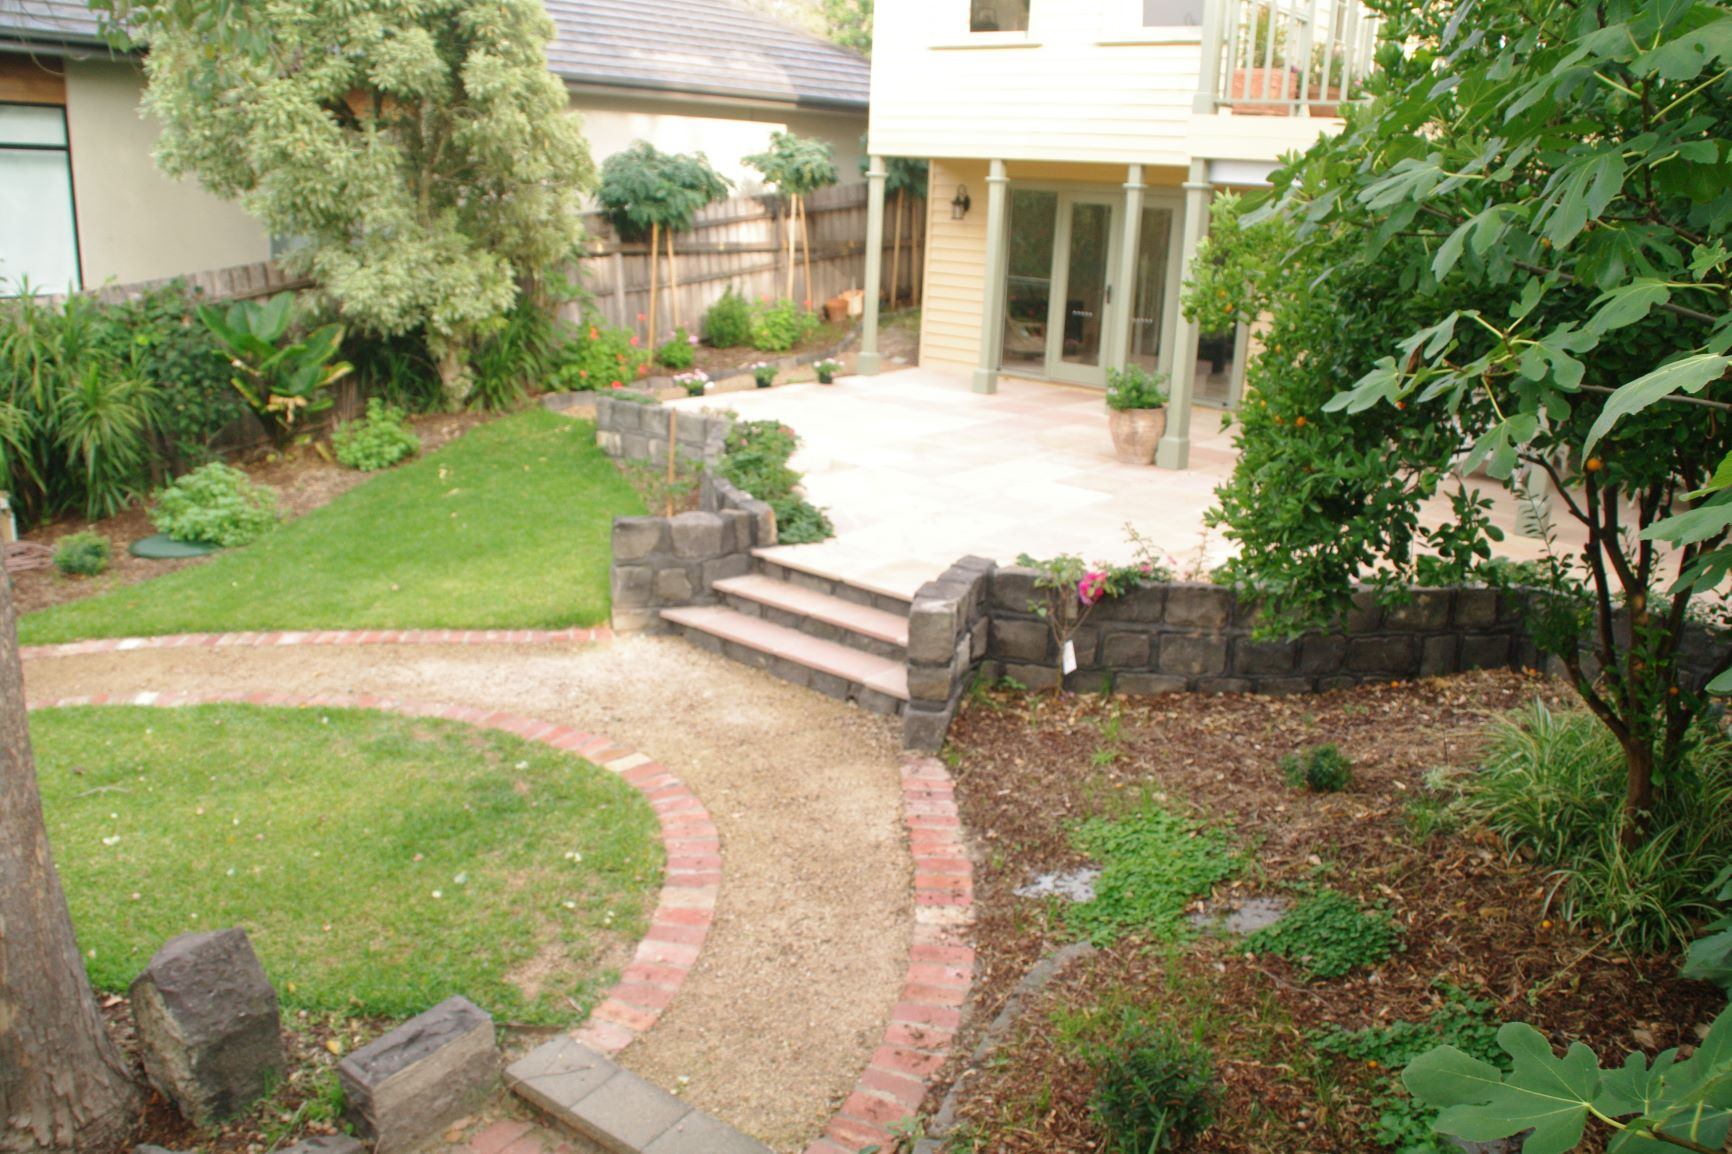 Garden path, rear of the propery garage,   Lawn, Garden path, Secondhand red brick edging, garden beds surrey Hills back garden,  Travertine stone pavers